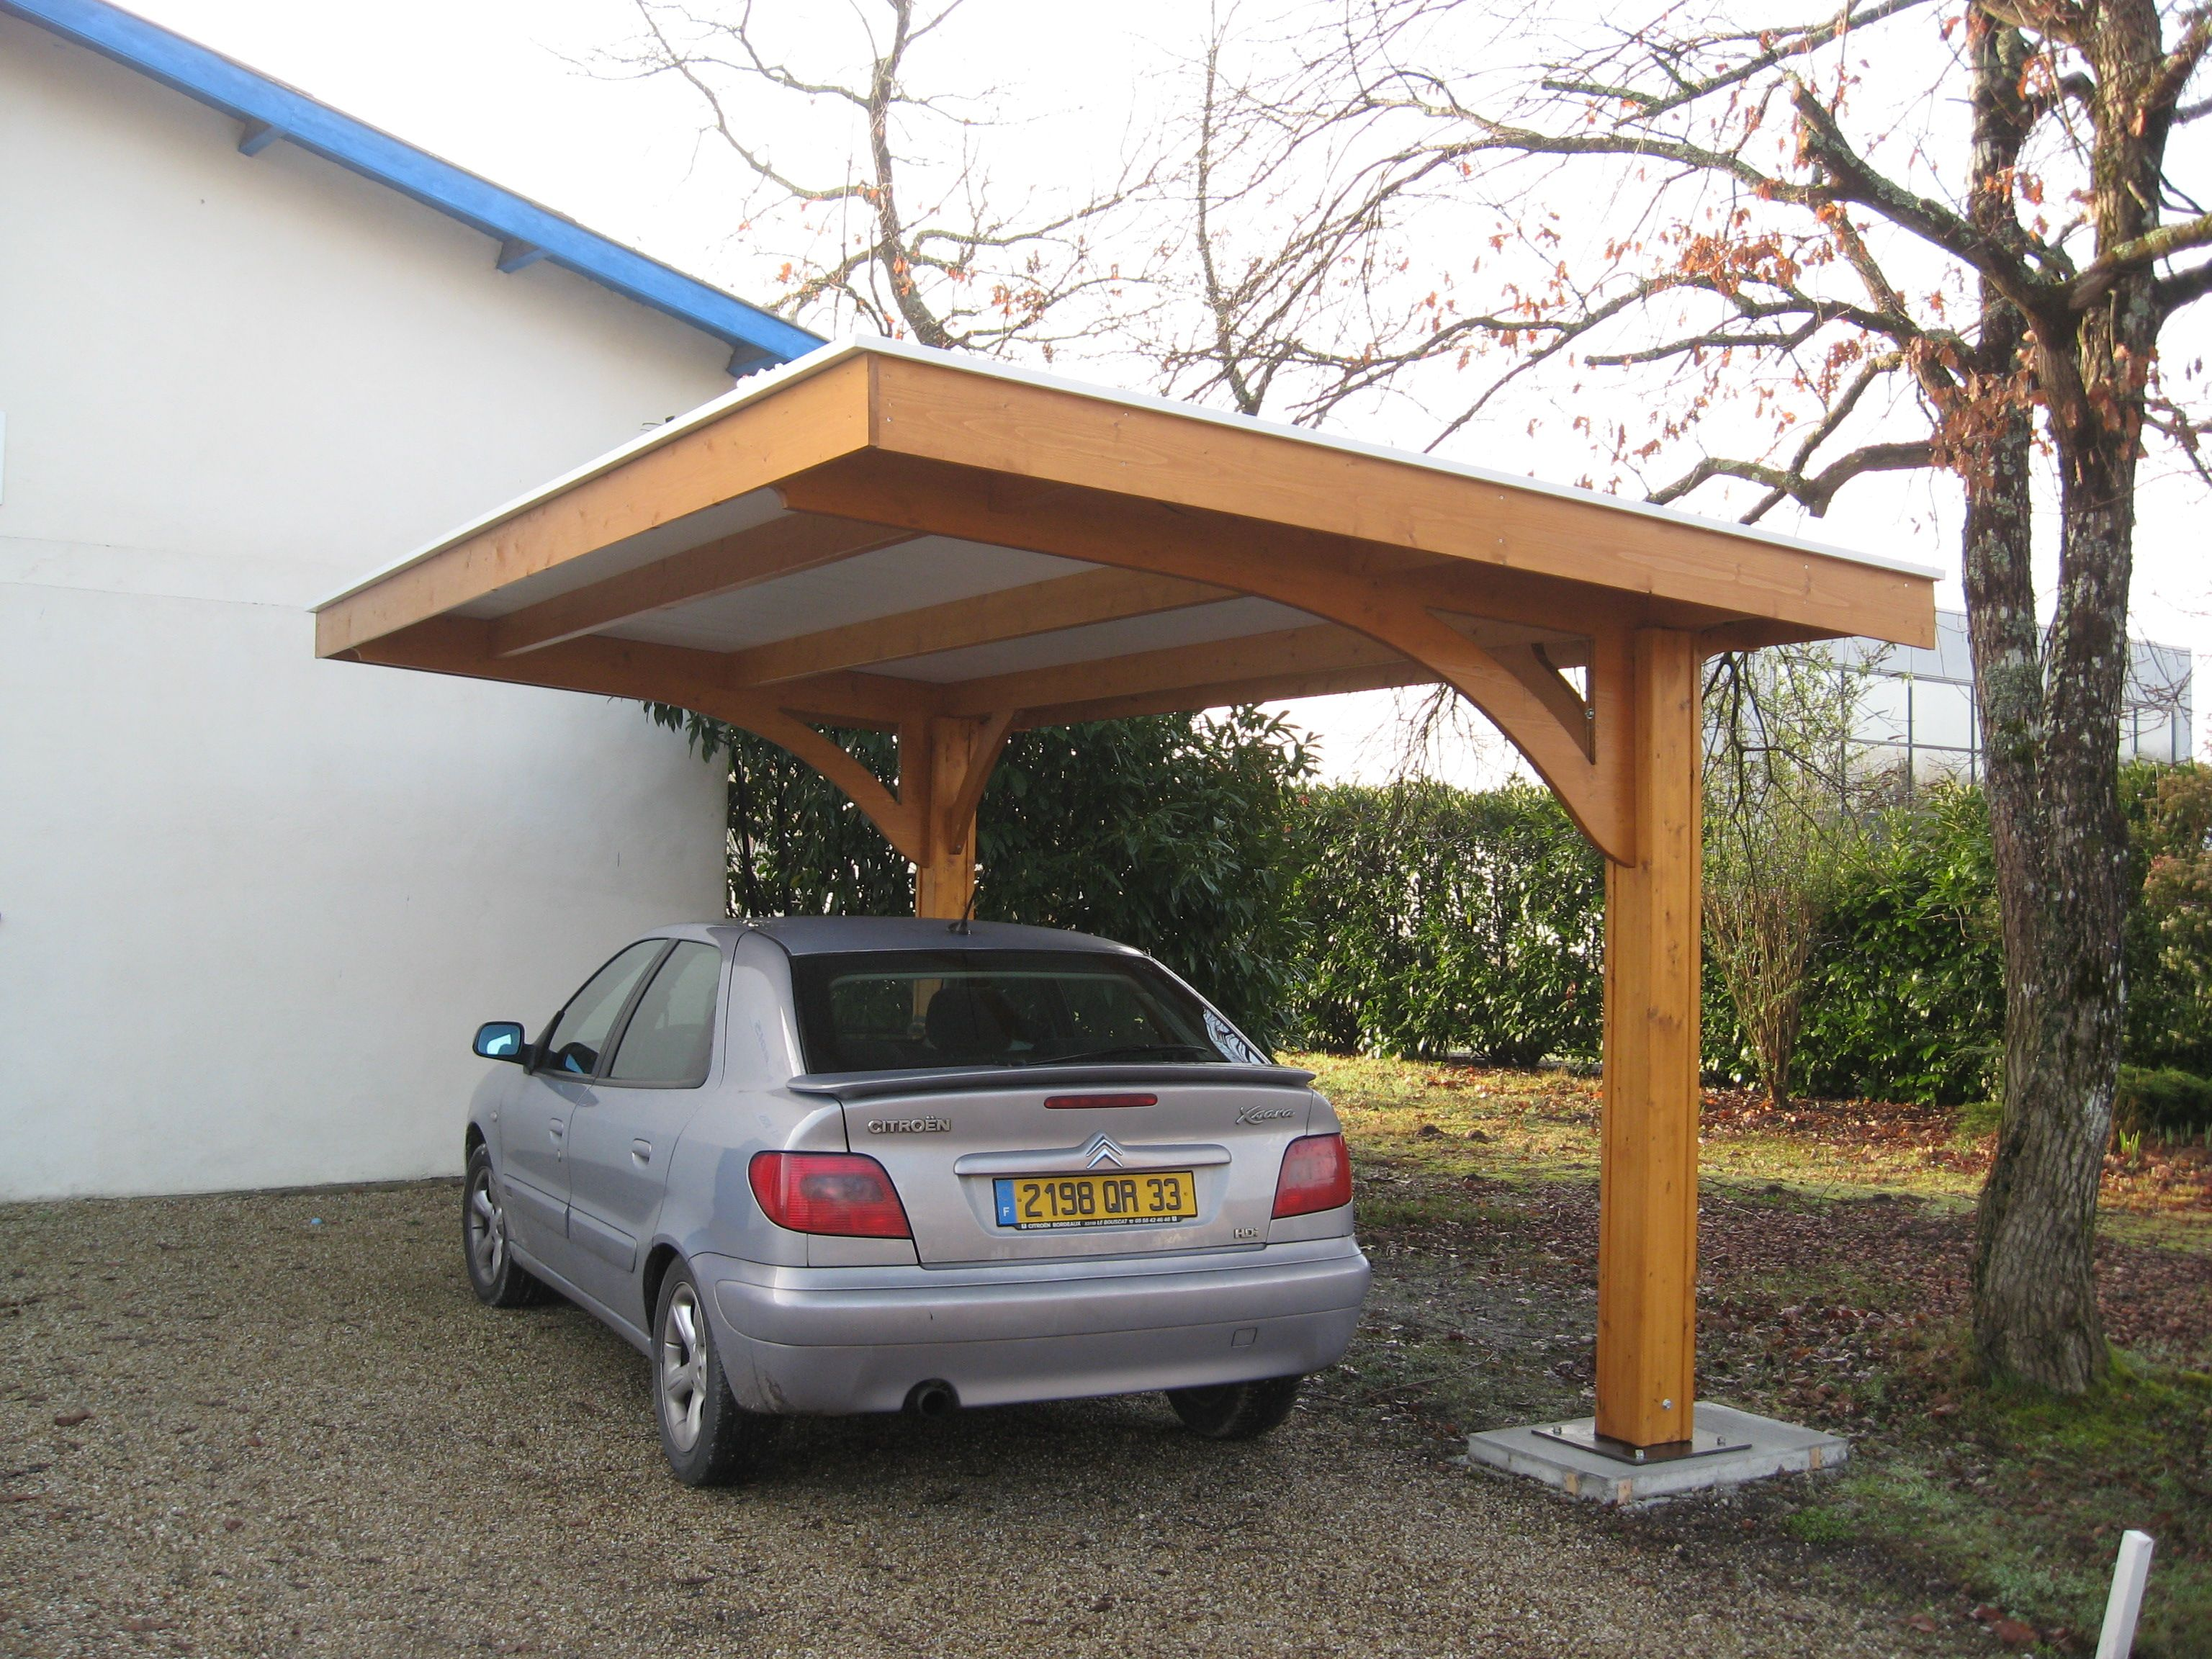 Carports For Cars 8 : Les carports abri voiture pinterest refuges